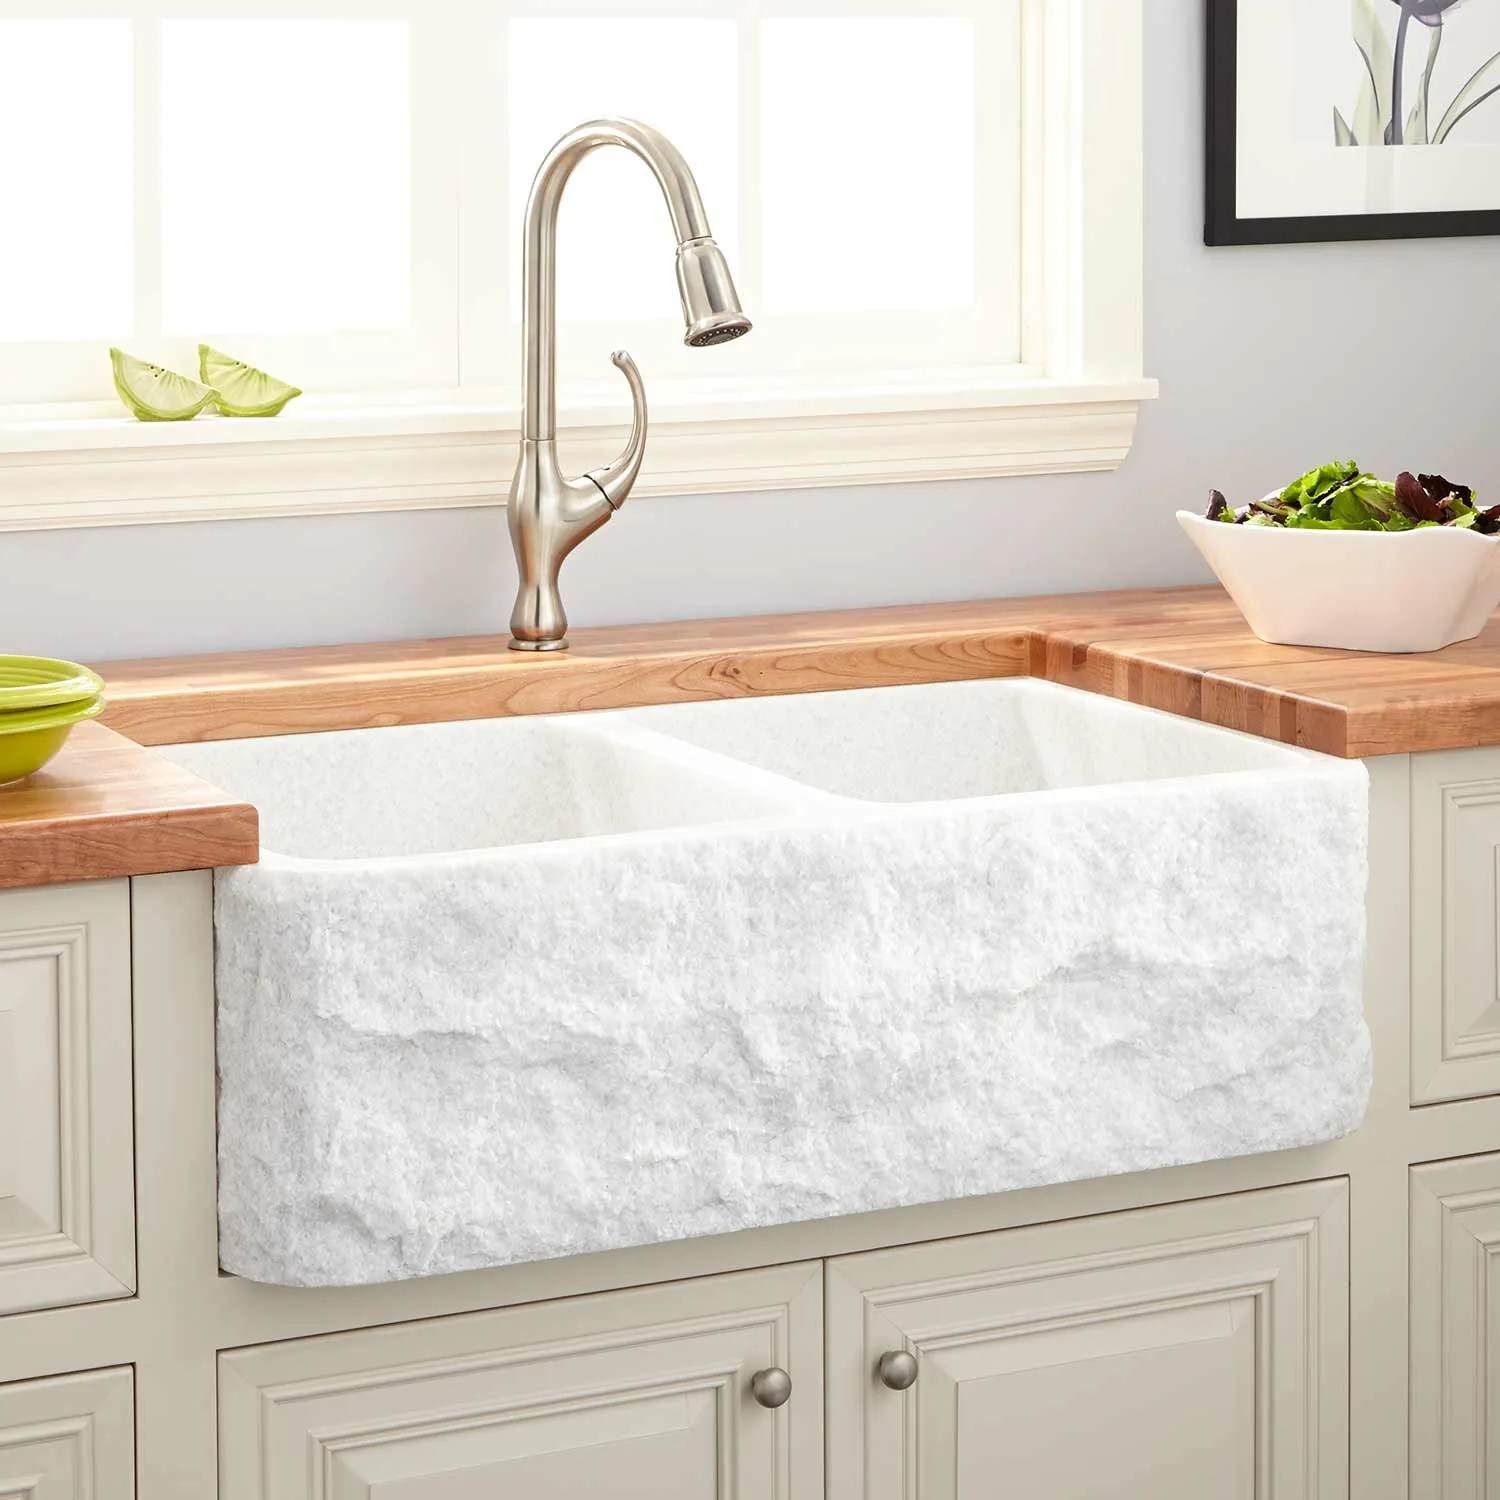 Stone Farmhouse Sink Lowest Price Farmhouse Sink Buying Guide